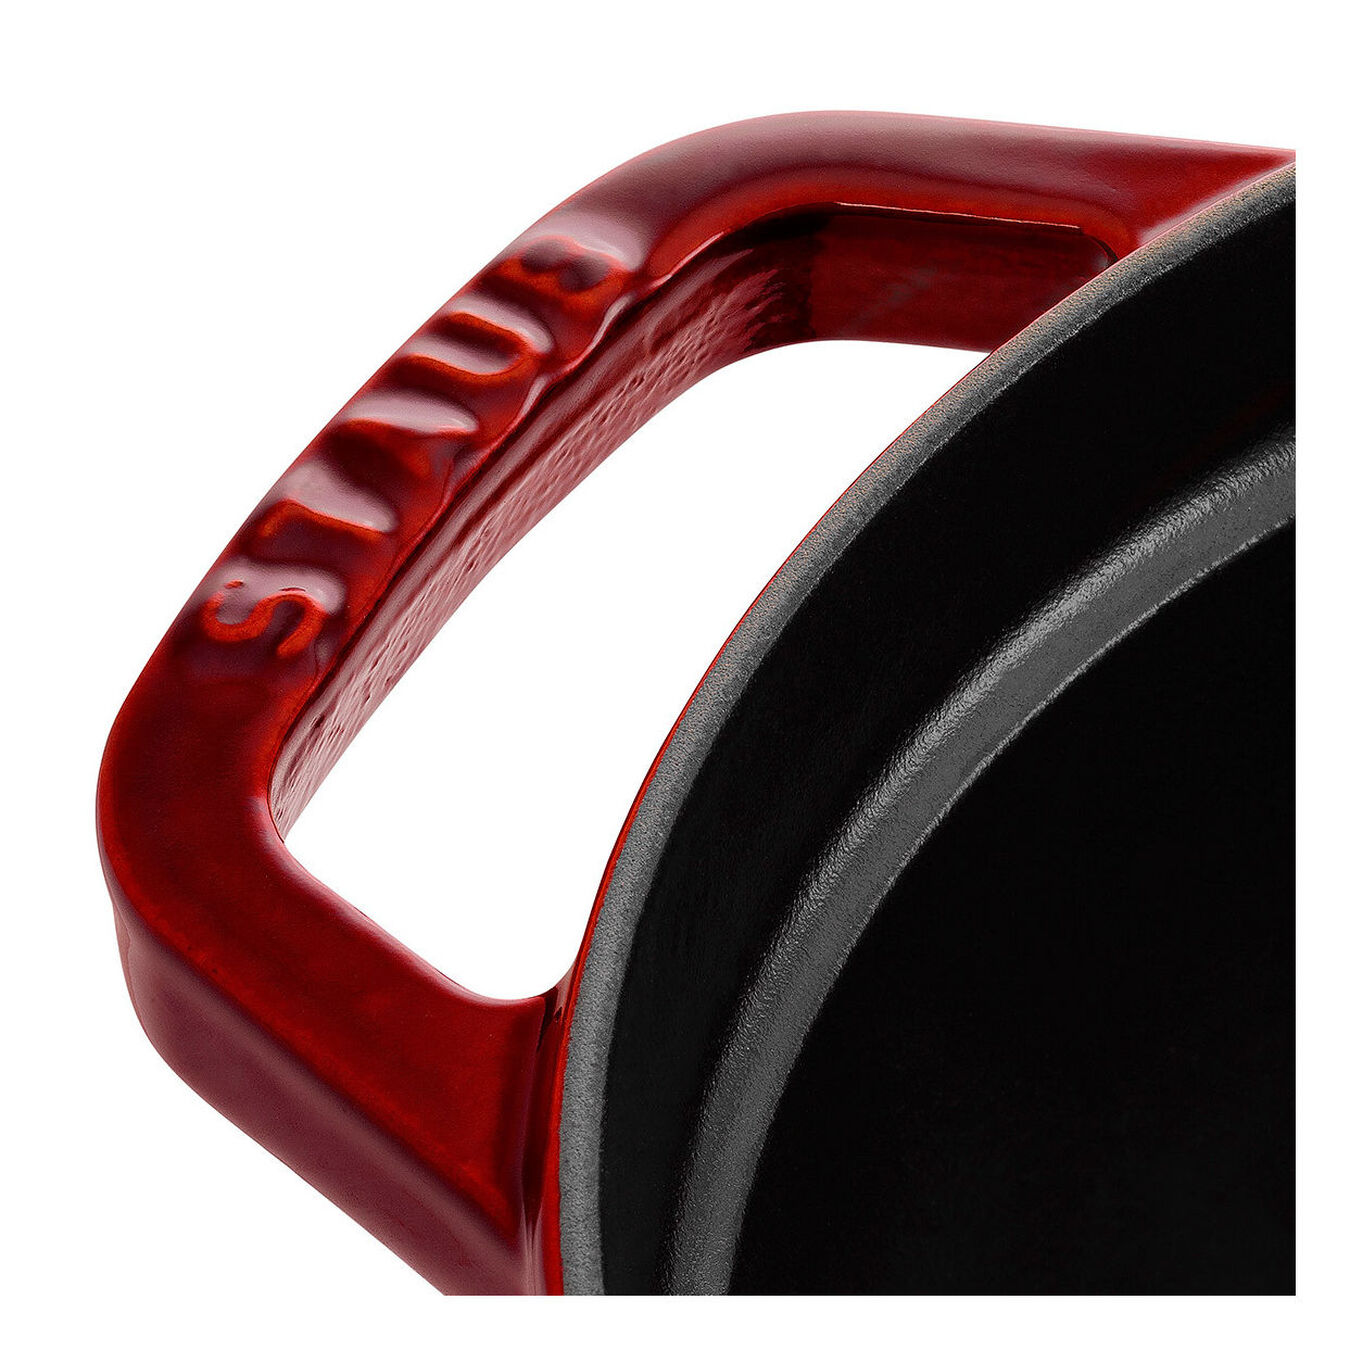 4,25 l Cast iron oval Faitout, Grenadine-Red,,large 3